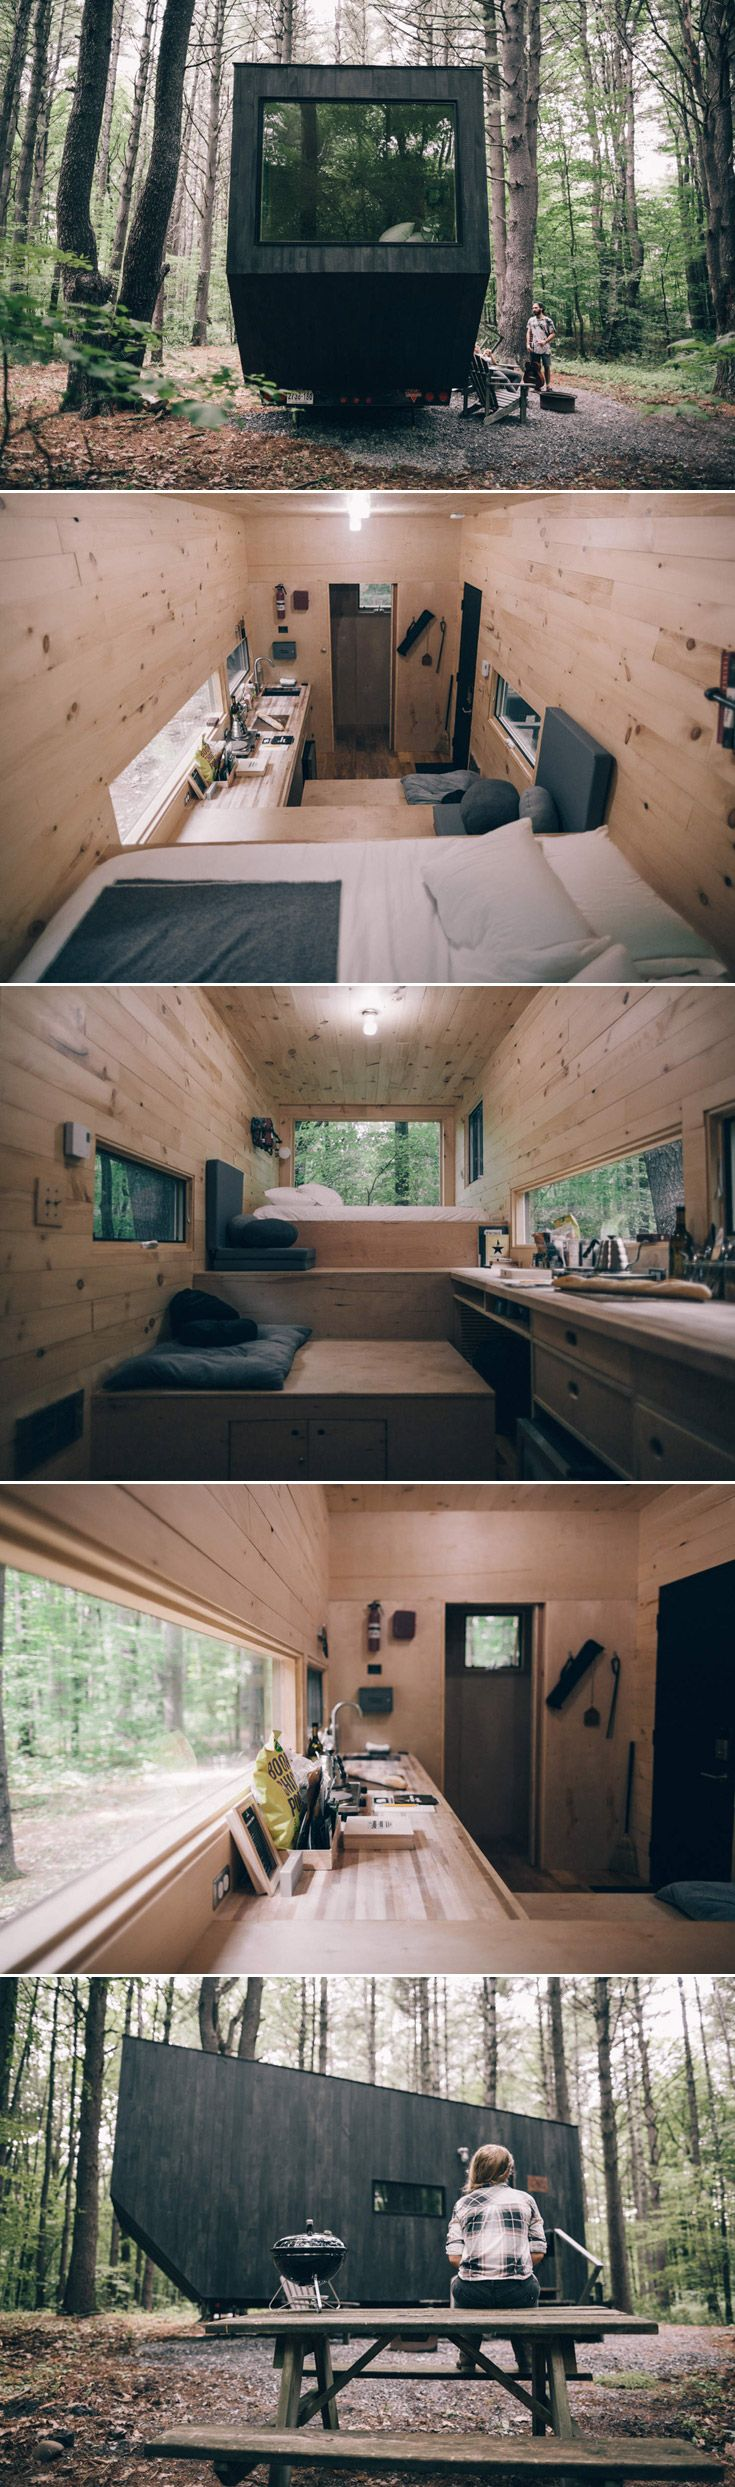 A tiny house located in the woods of upstate New York. Available for nightly rental through getaway.house.